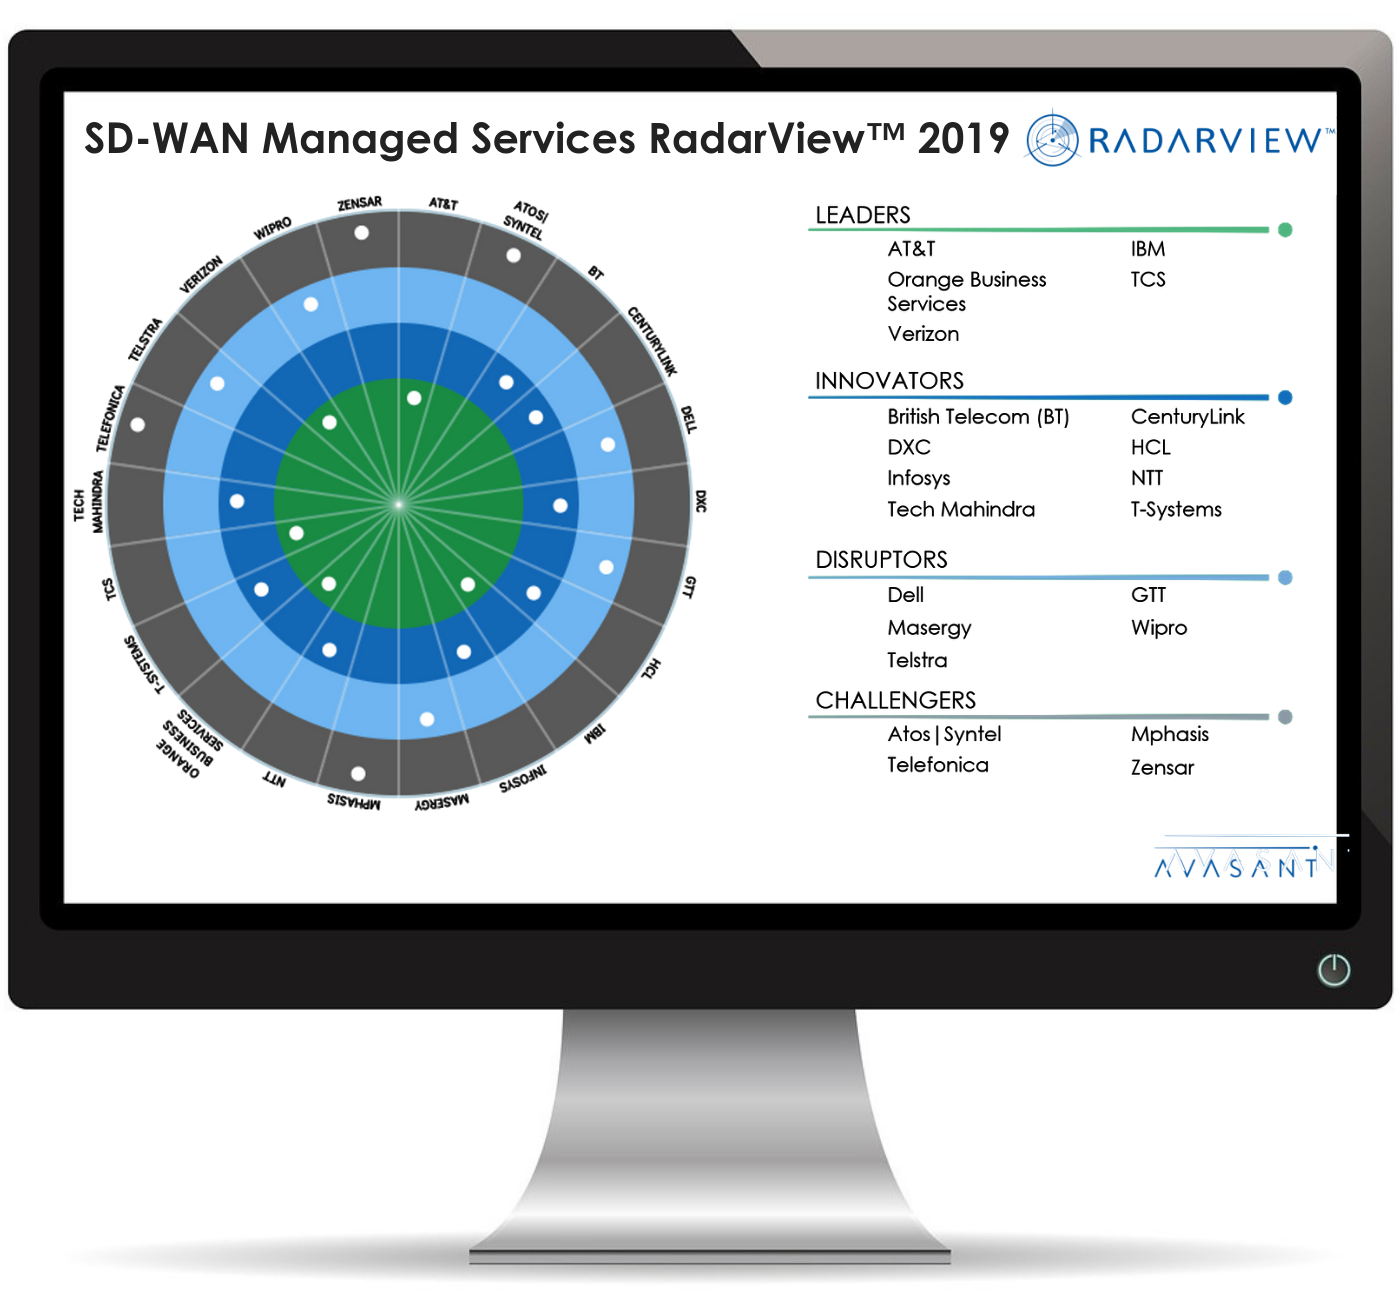 SD Wan Main Graphic 1 - SD-WAN Managed Services 2019 T-Systems RadarView™ Profile